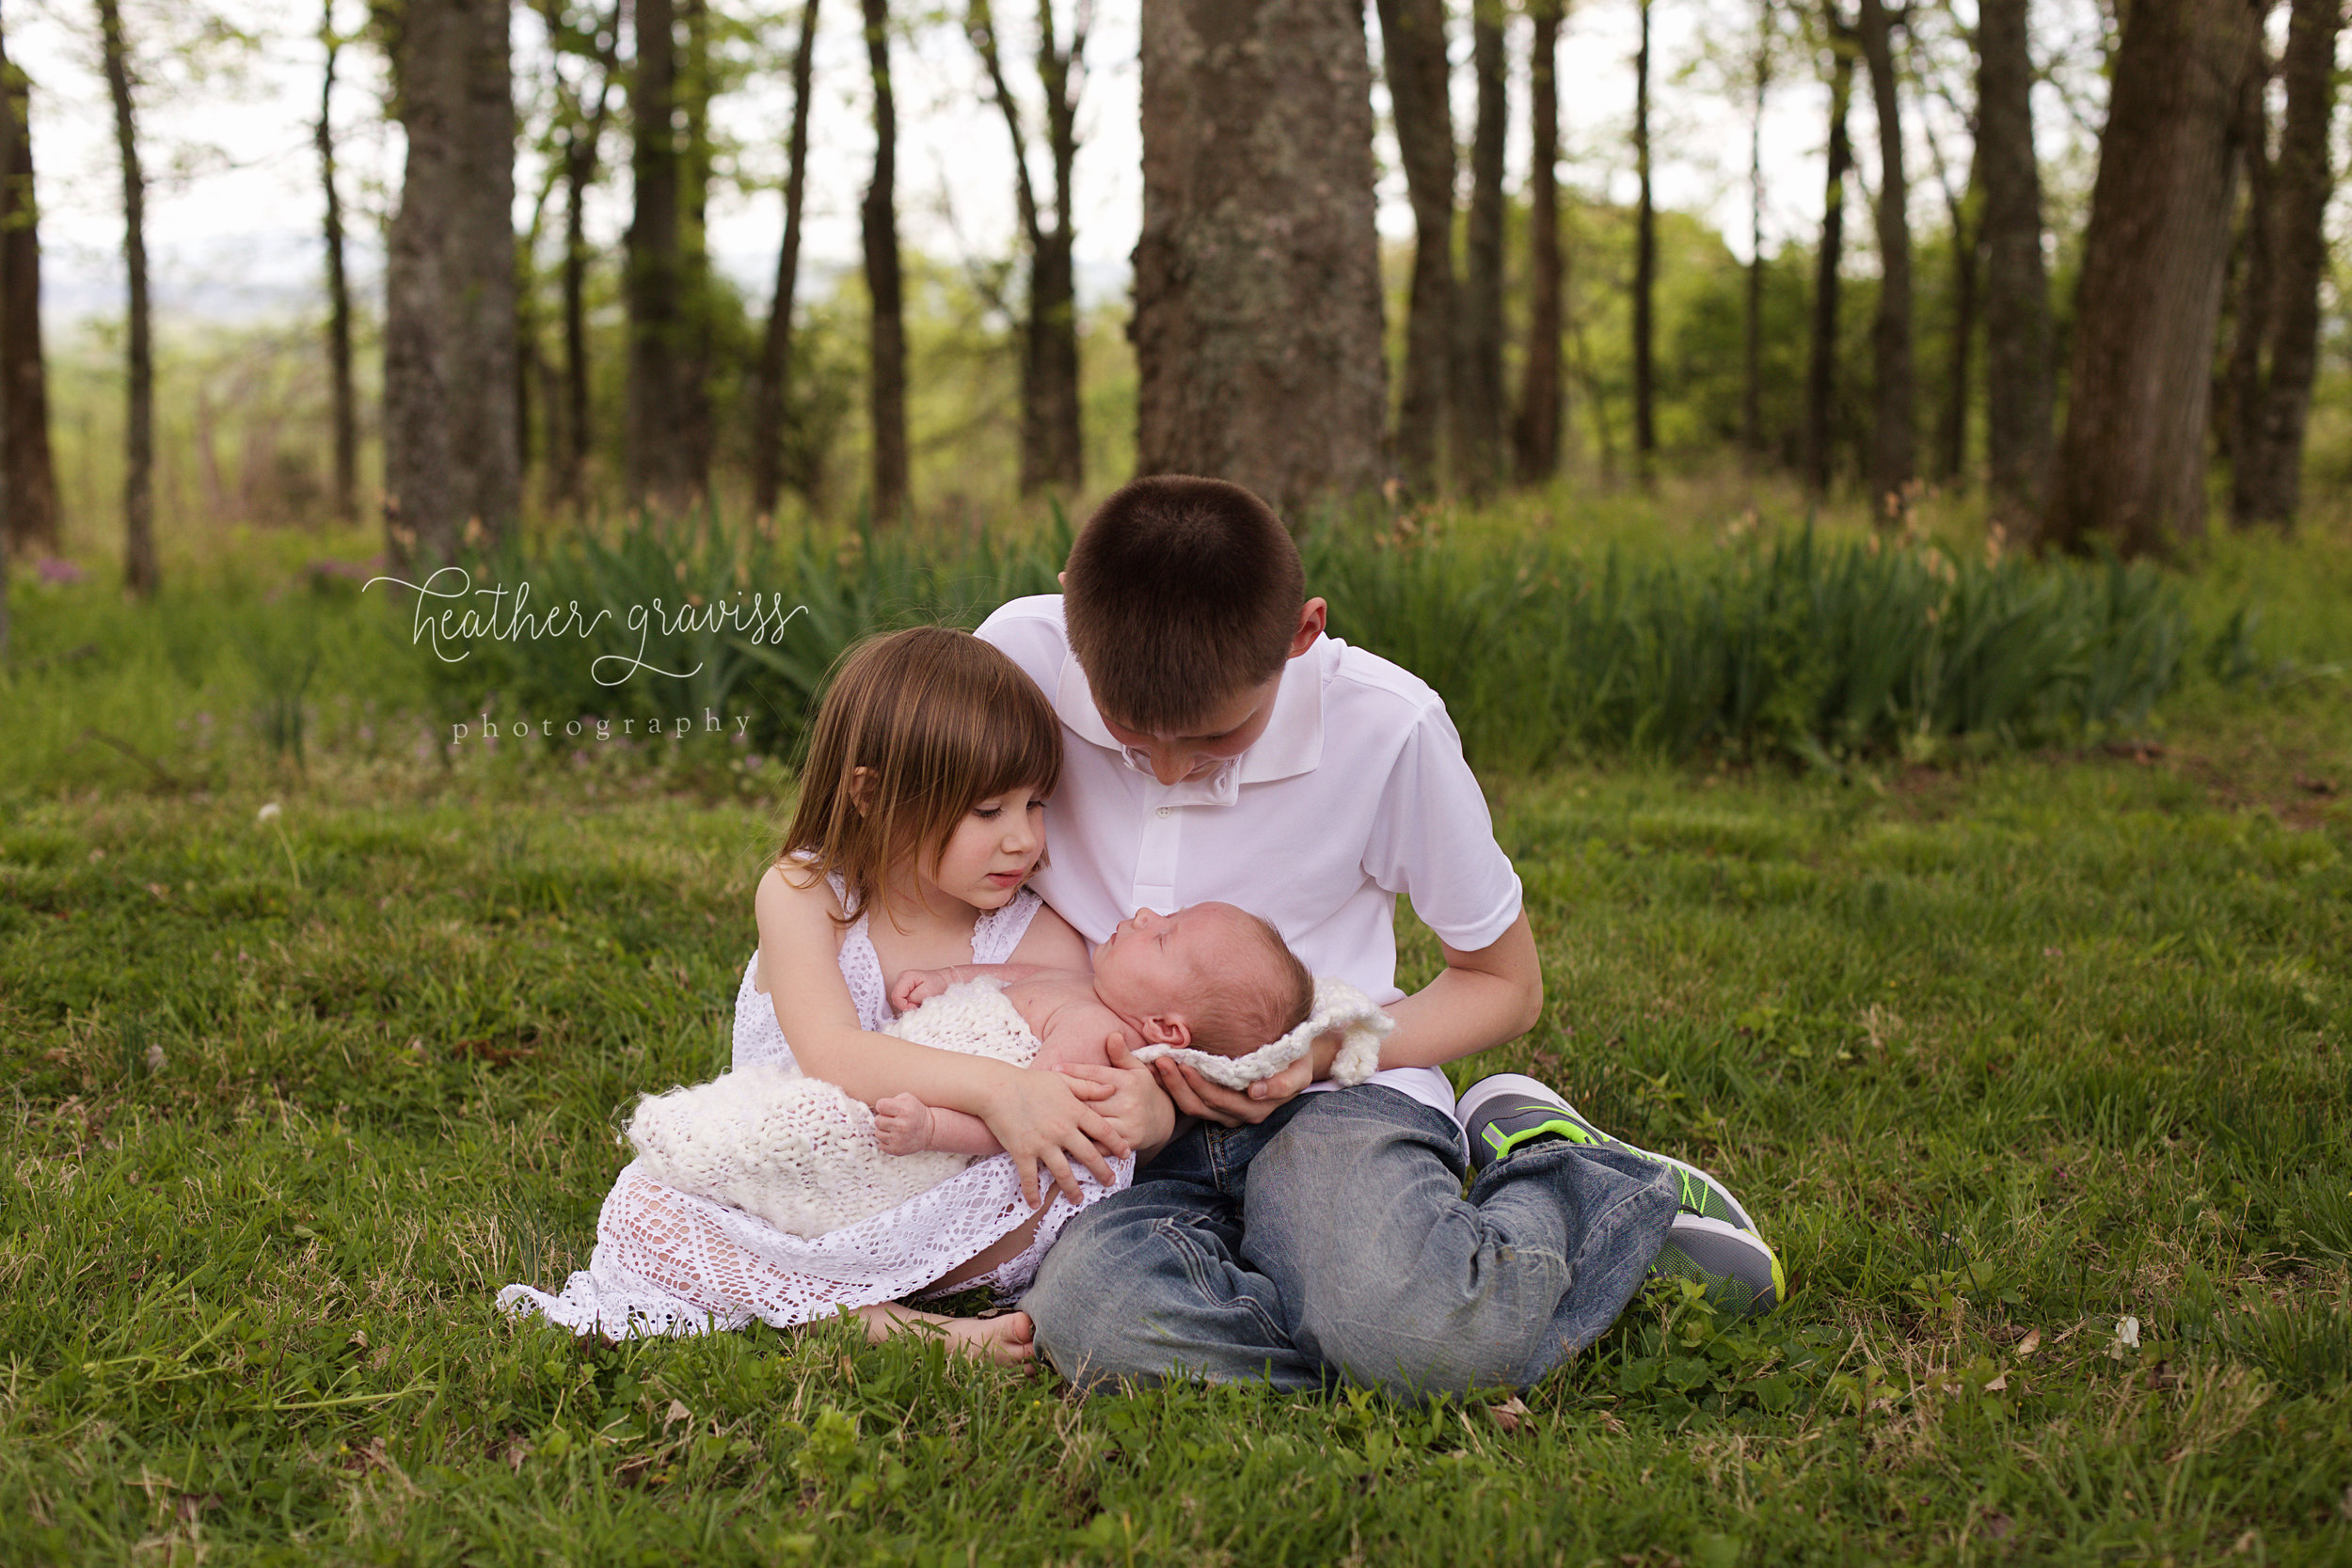 nashville middle tn family photography11.jpg